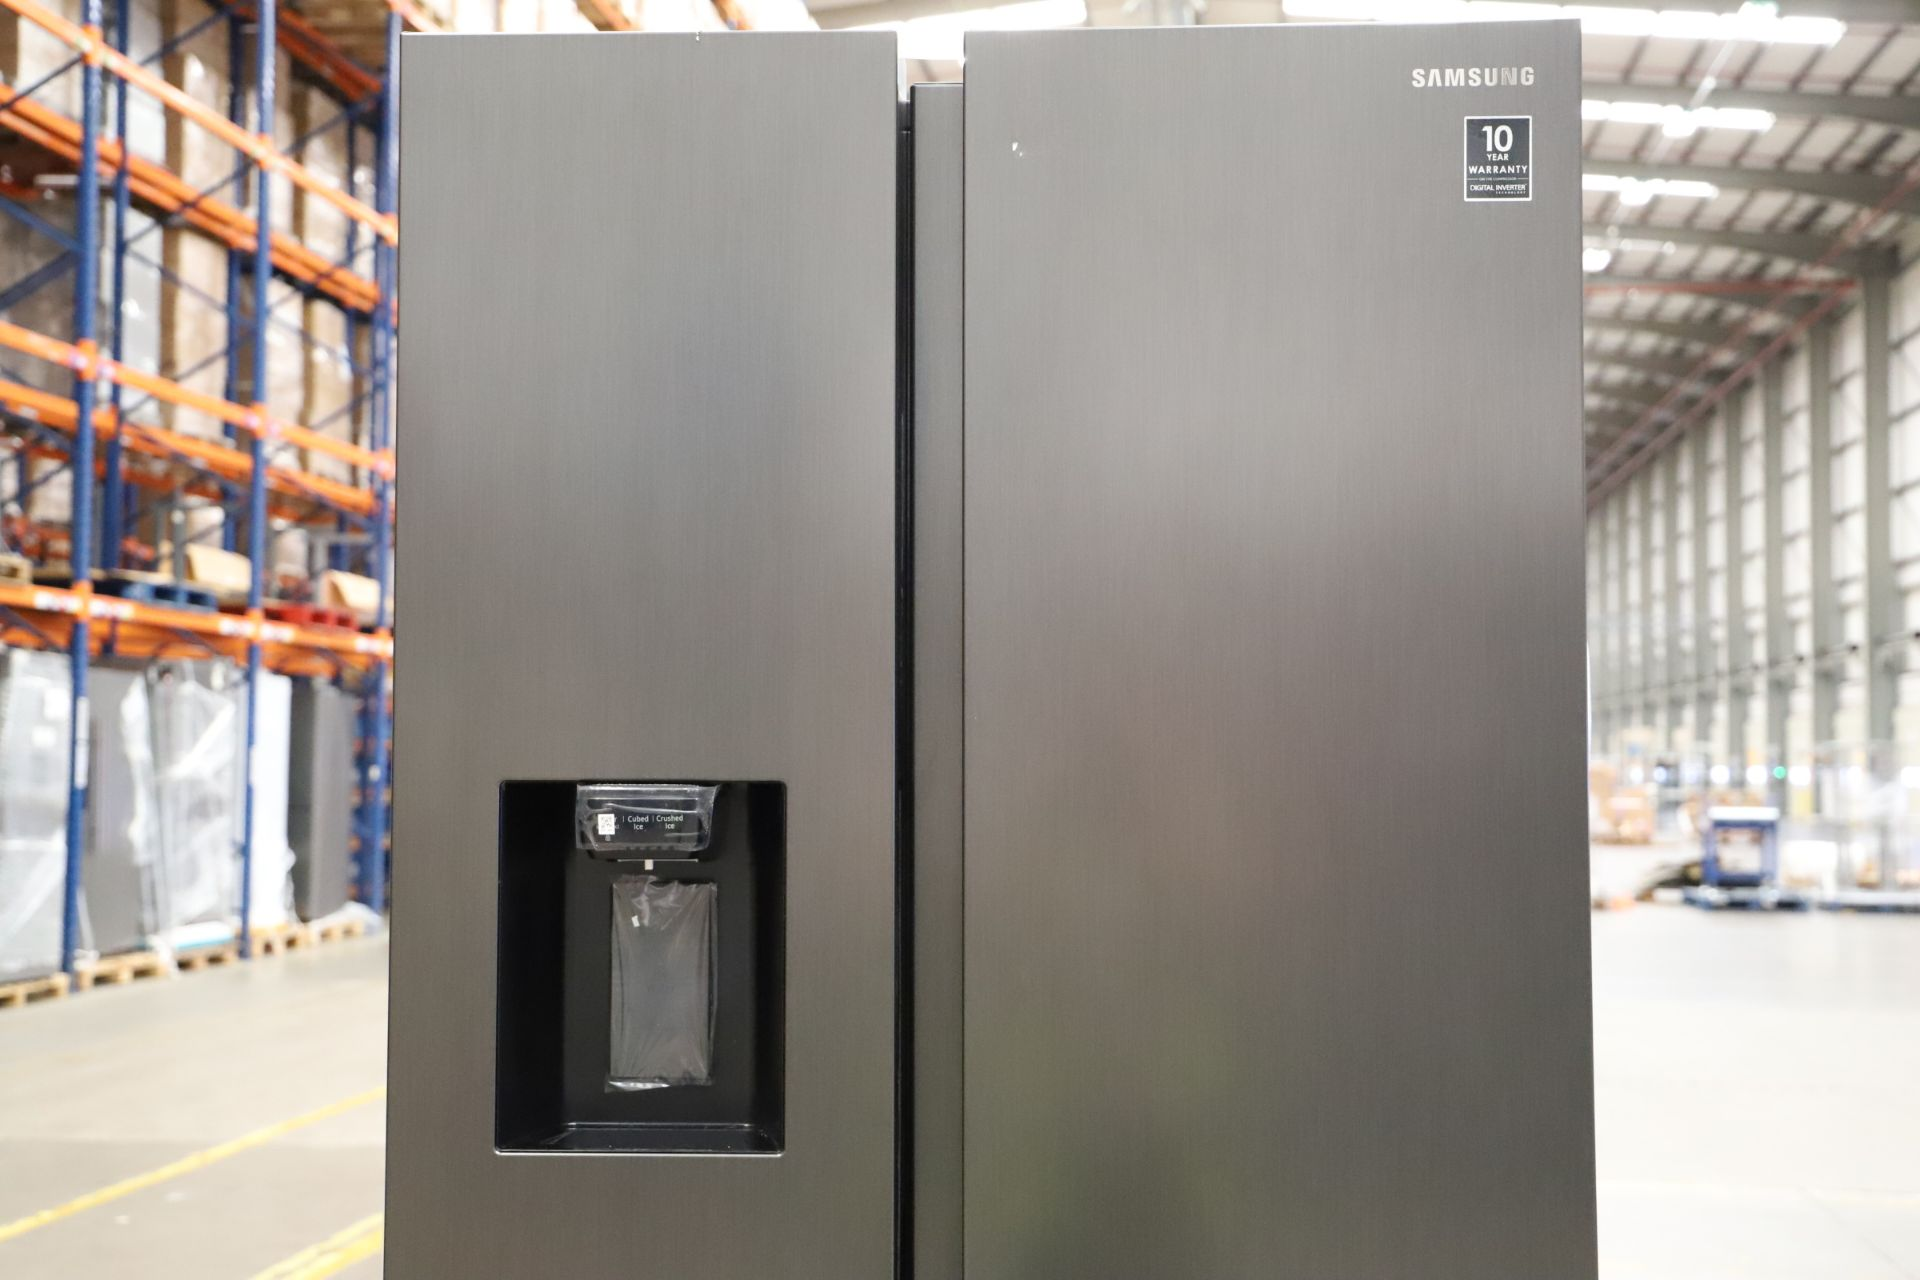 Pallet of 1 Samsung Water & Ice Fridge freezer. Latest selling price £1,799.99 - Image 5 of 10